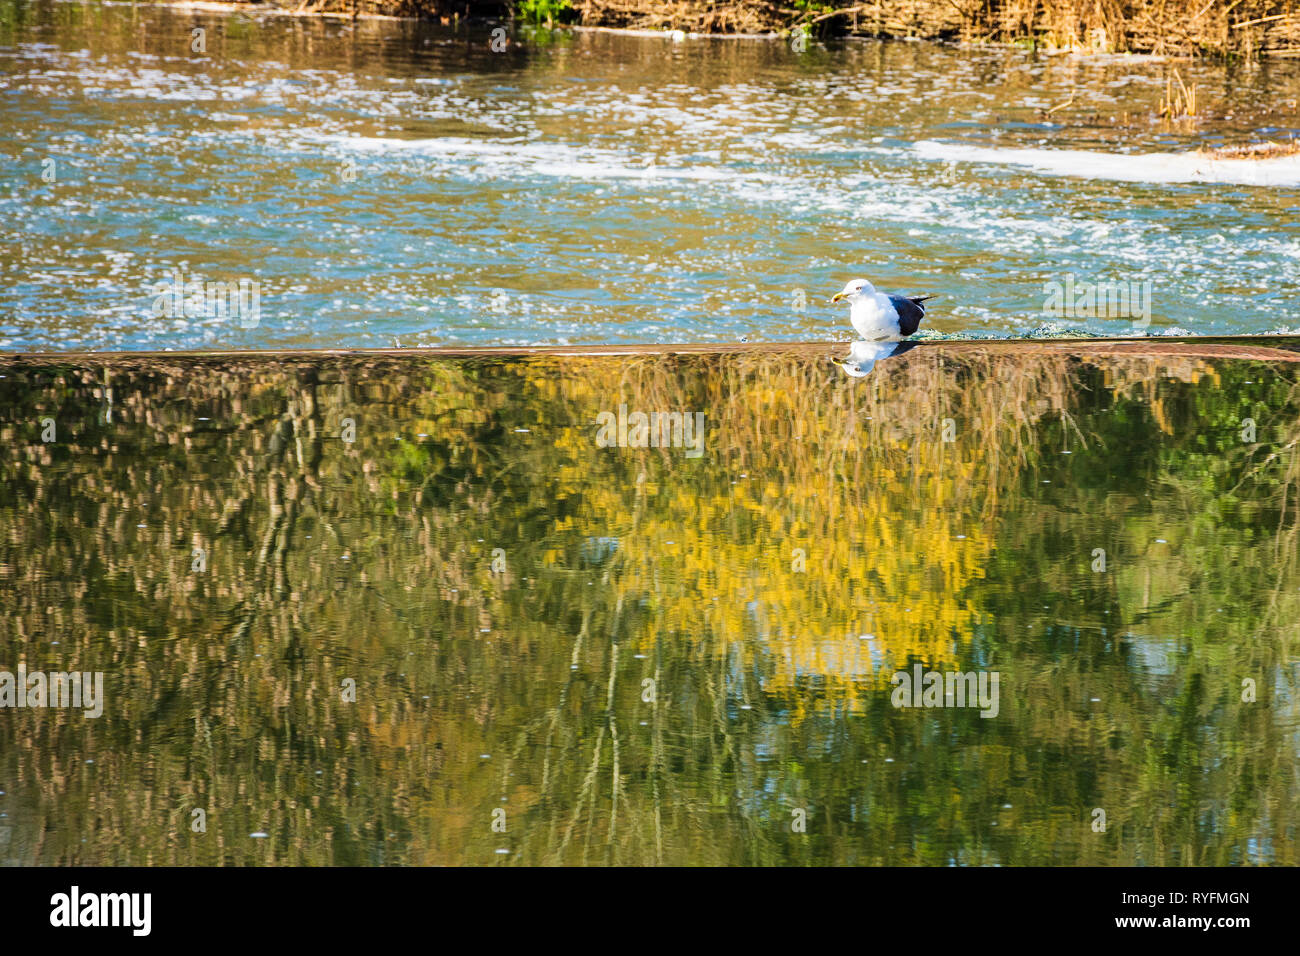 Seagull reflected in the river on top of the Avoncliff weir in Wiltshire with foam and ripples on the down river section in the background Stock Photo